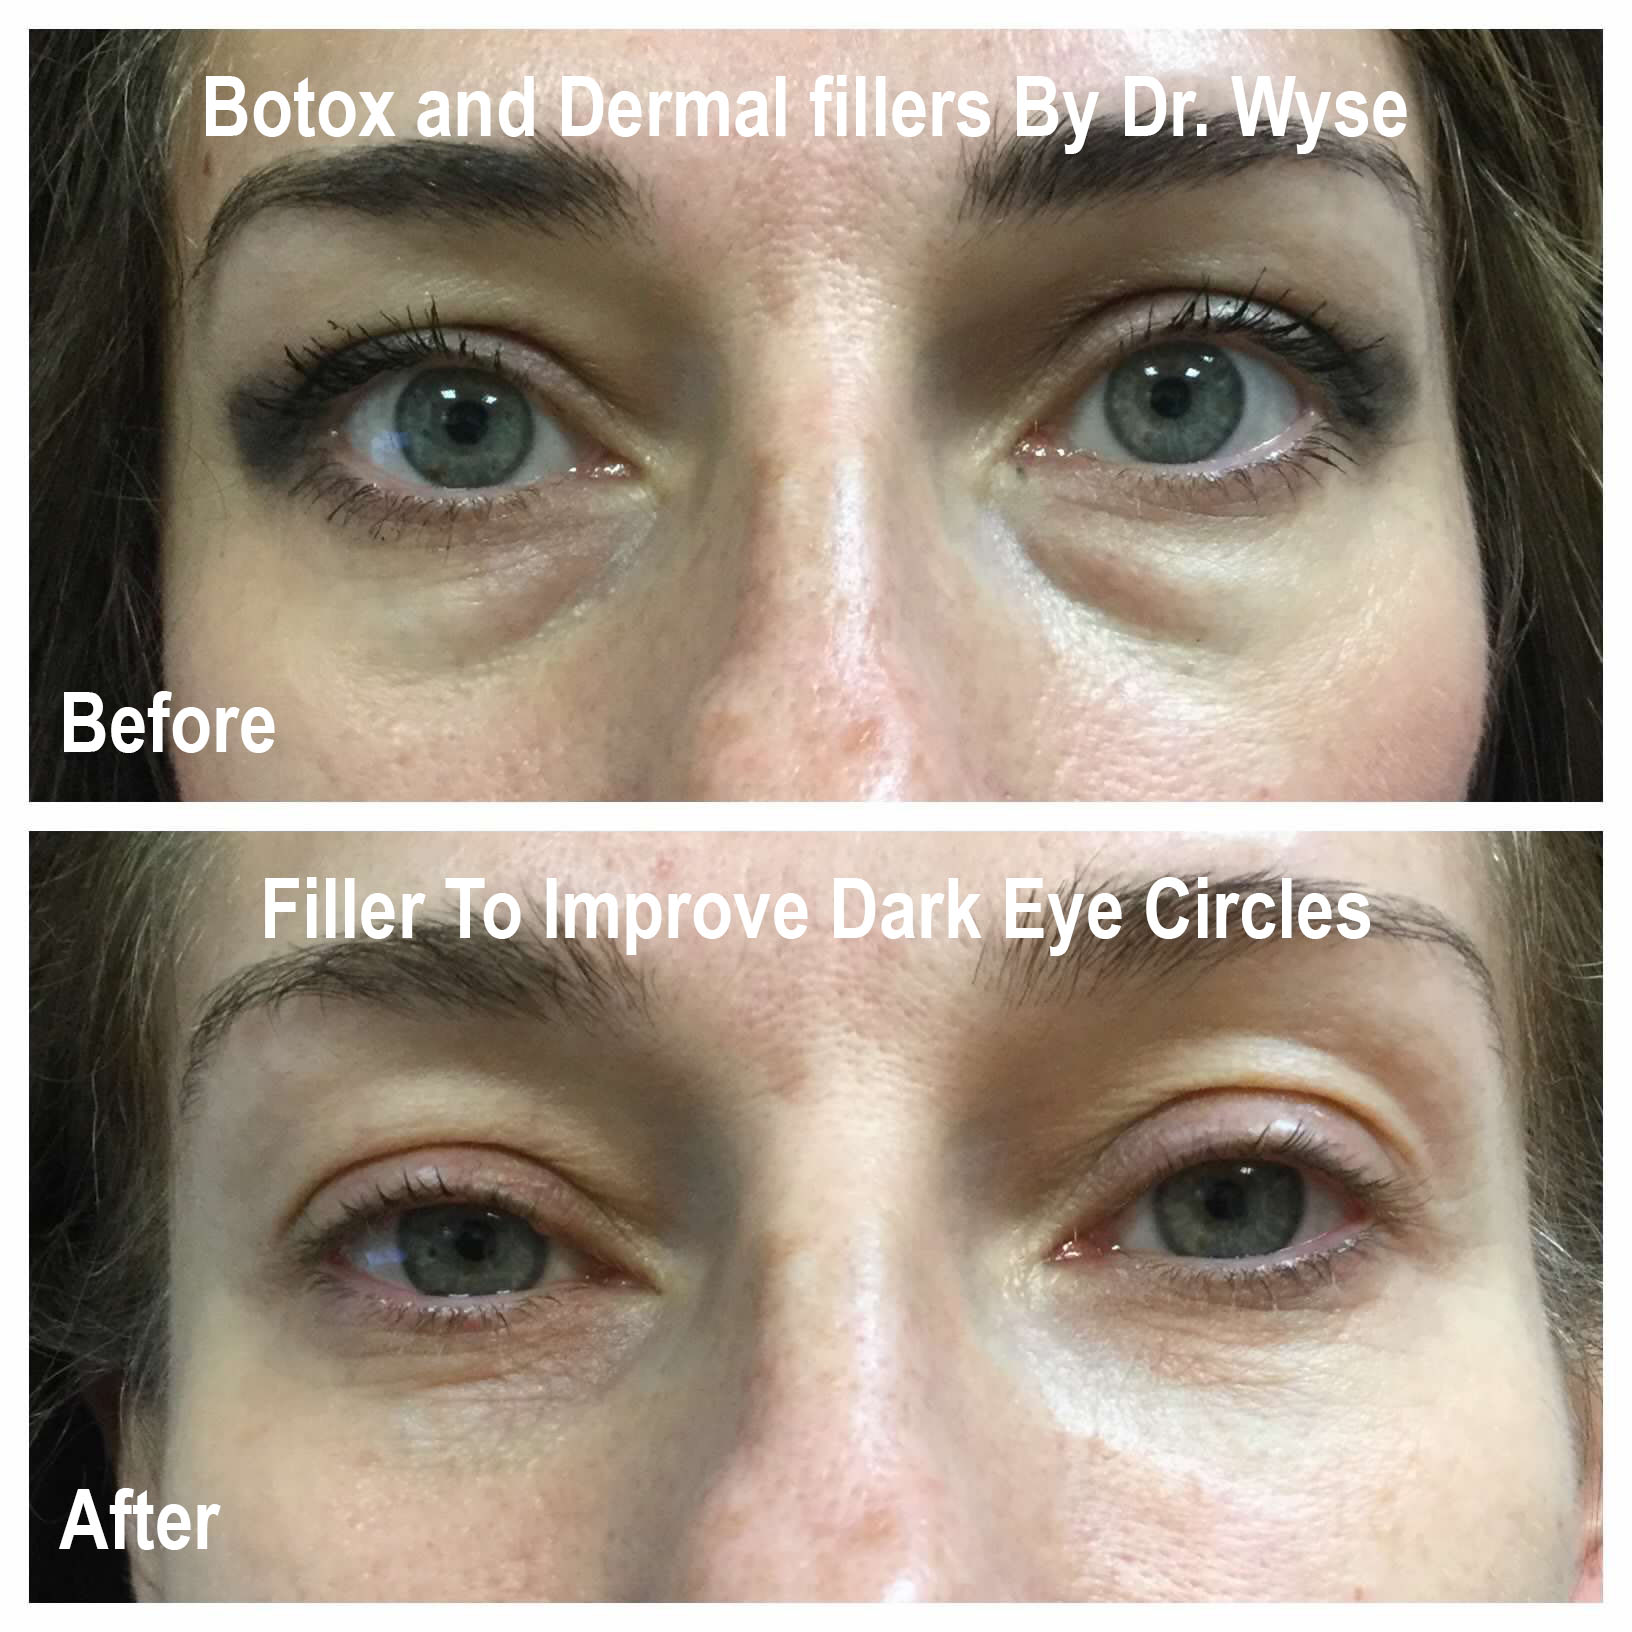 Before and After for Dermal Fillers